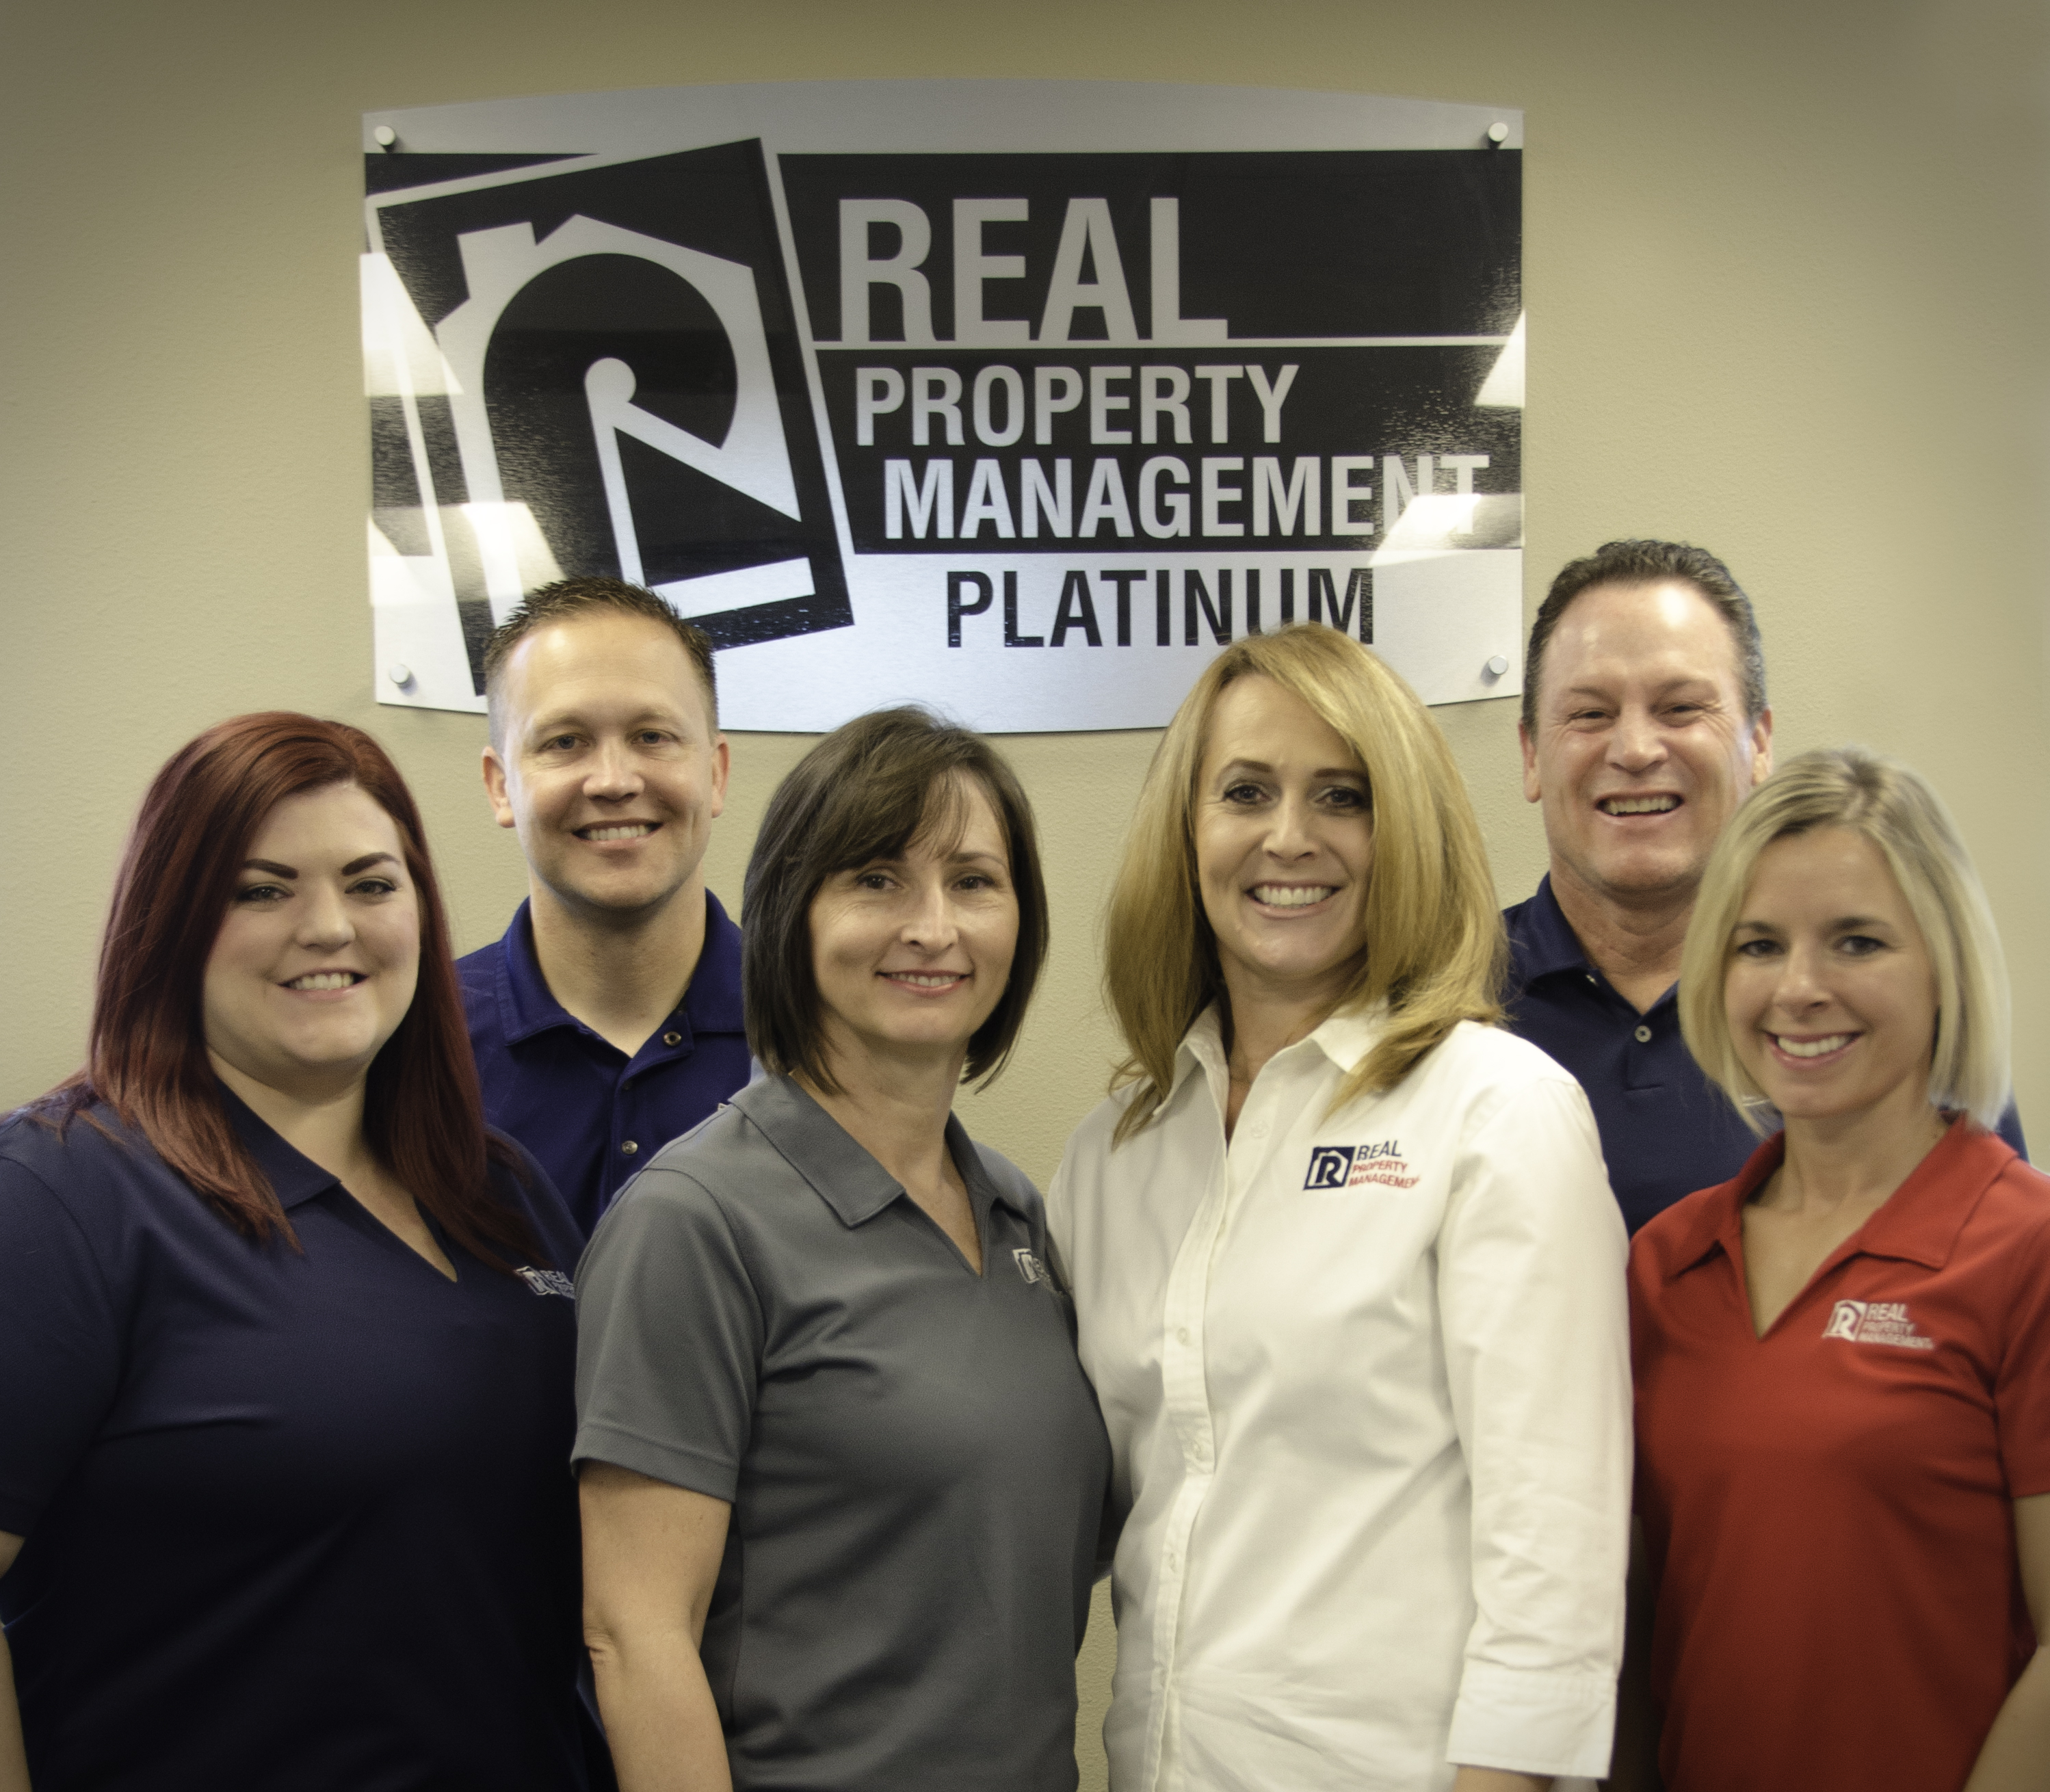 The Real Property Management Platinum Staff